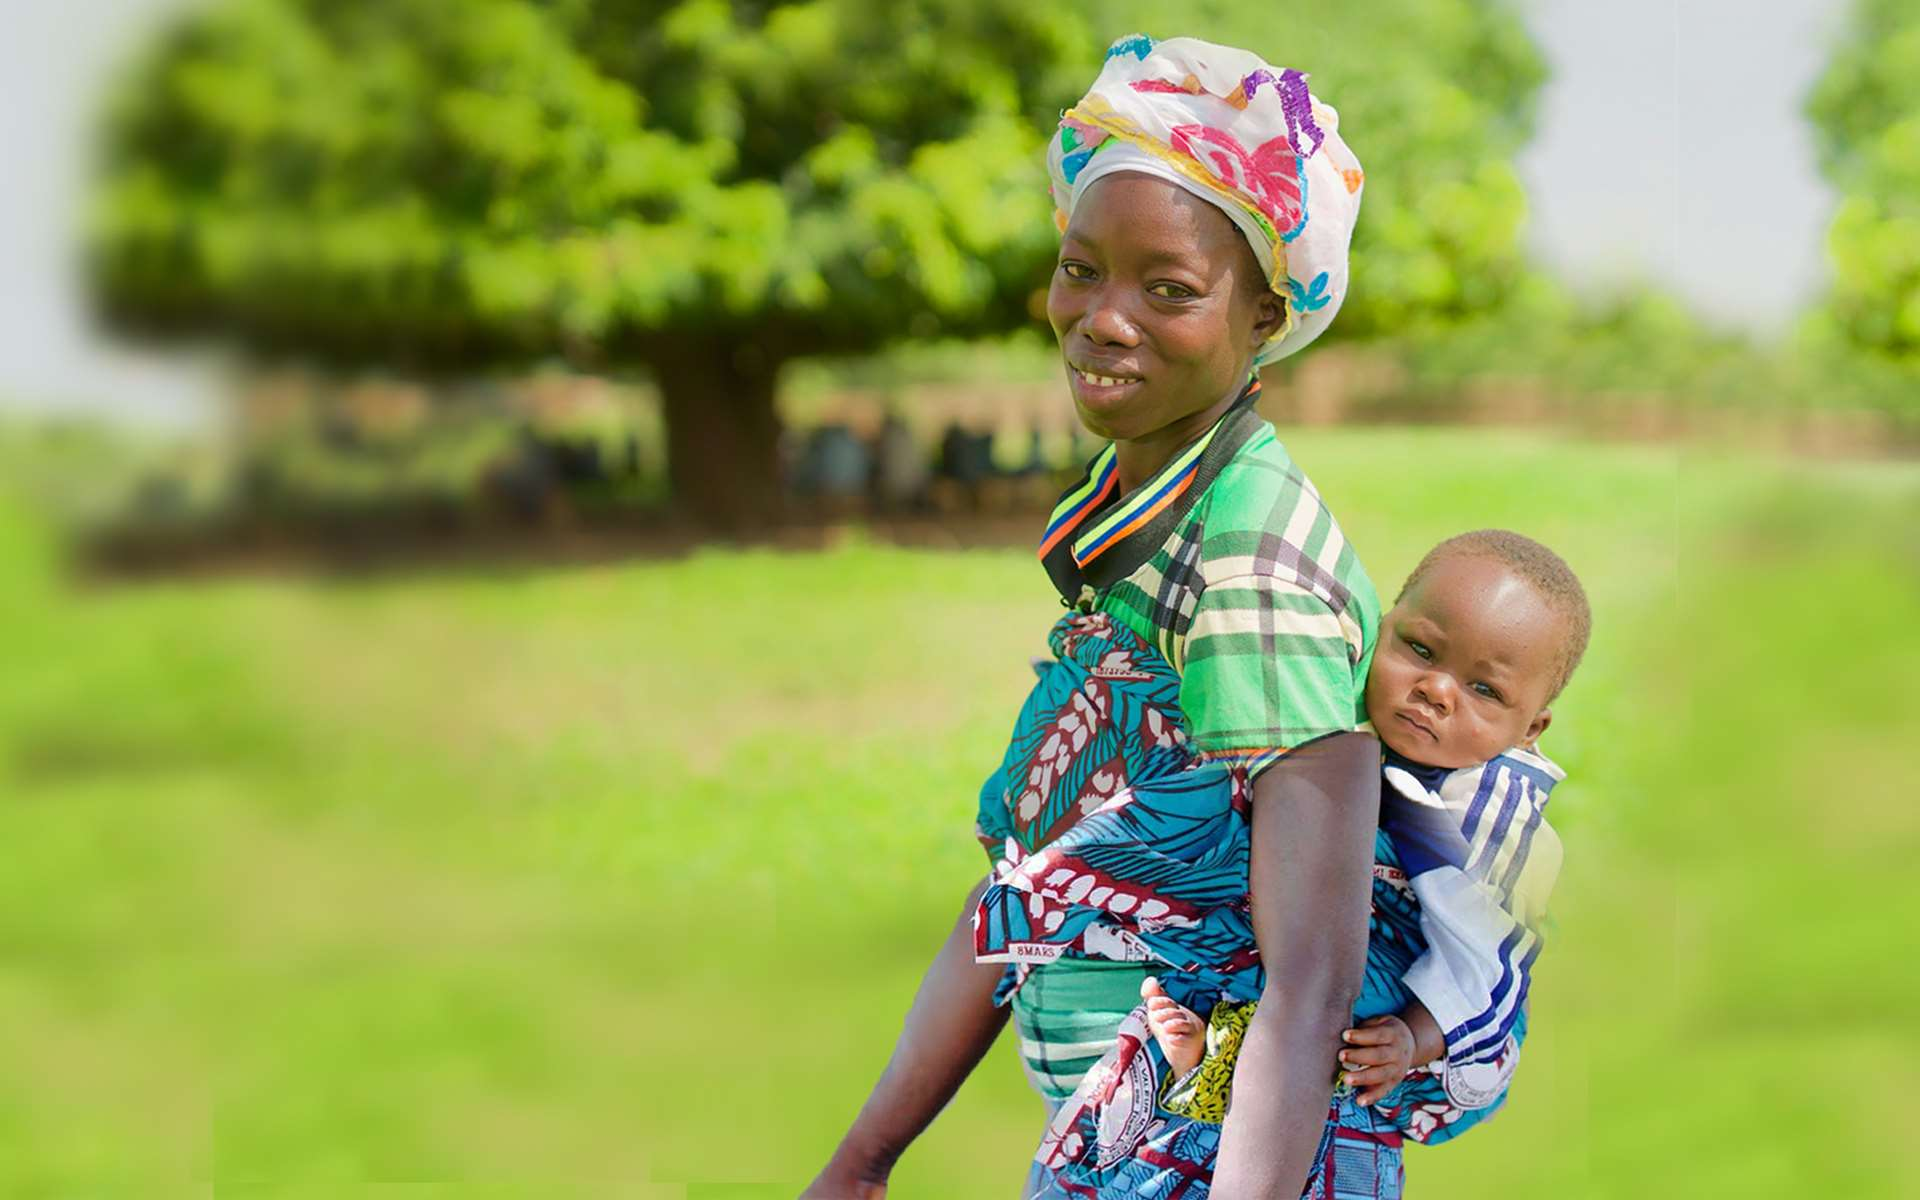 Kabouga, a woman on a Tree Aid enterprise project, with her baby on her back in front of a tree in her village.